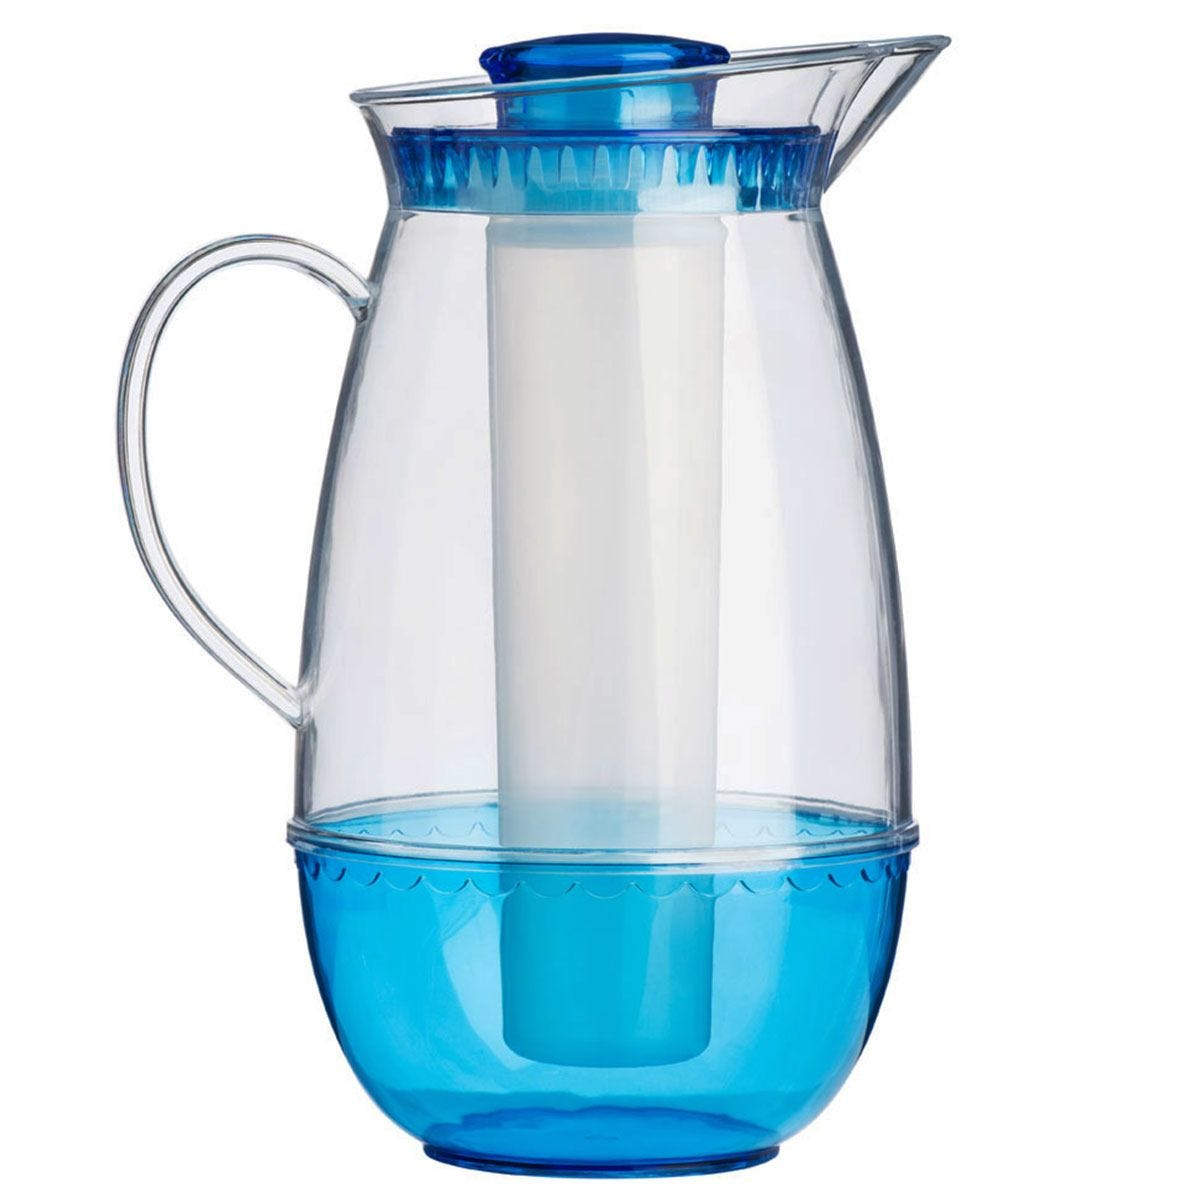 Premier Housewares 2.5L Jug with Ice Chamber - Blue